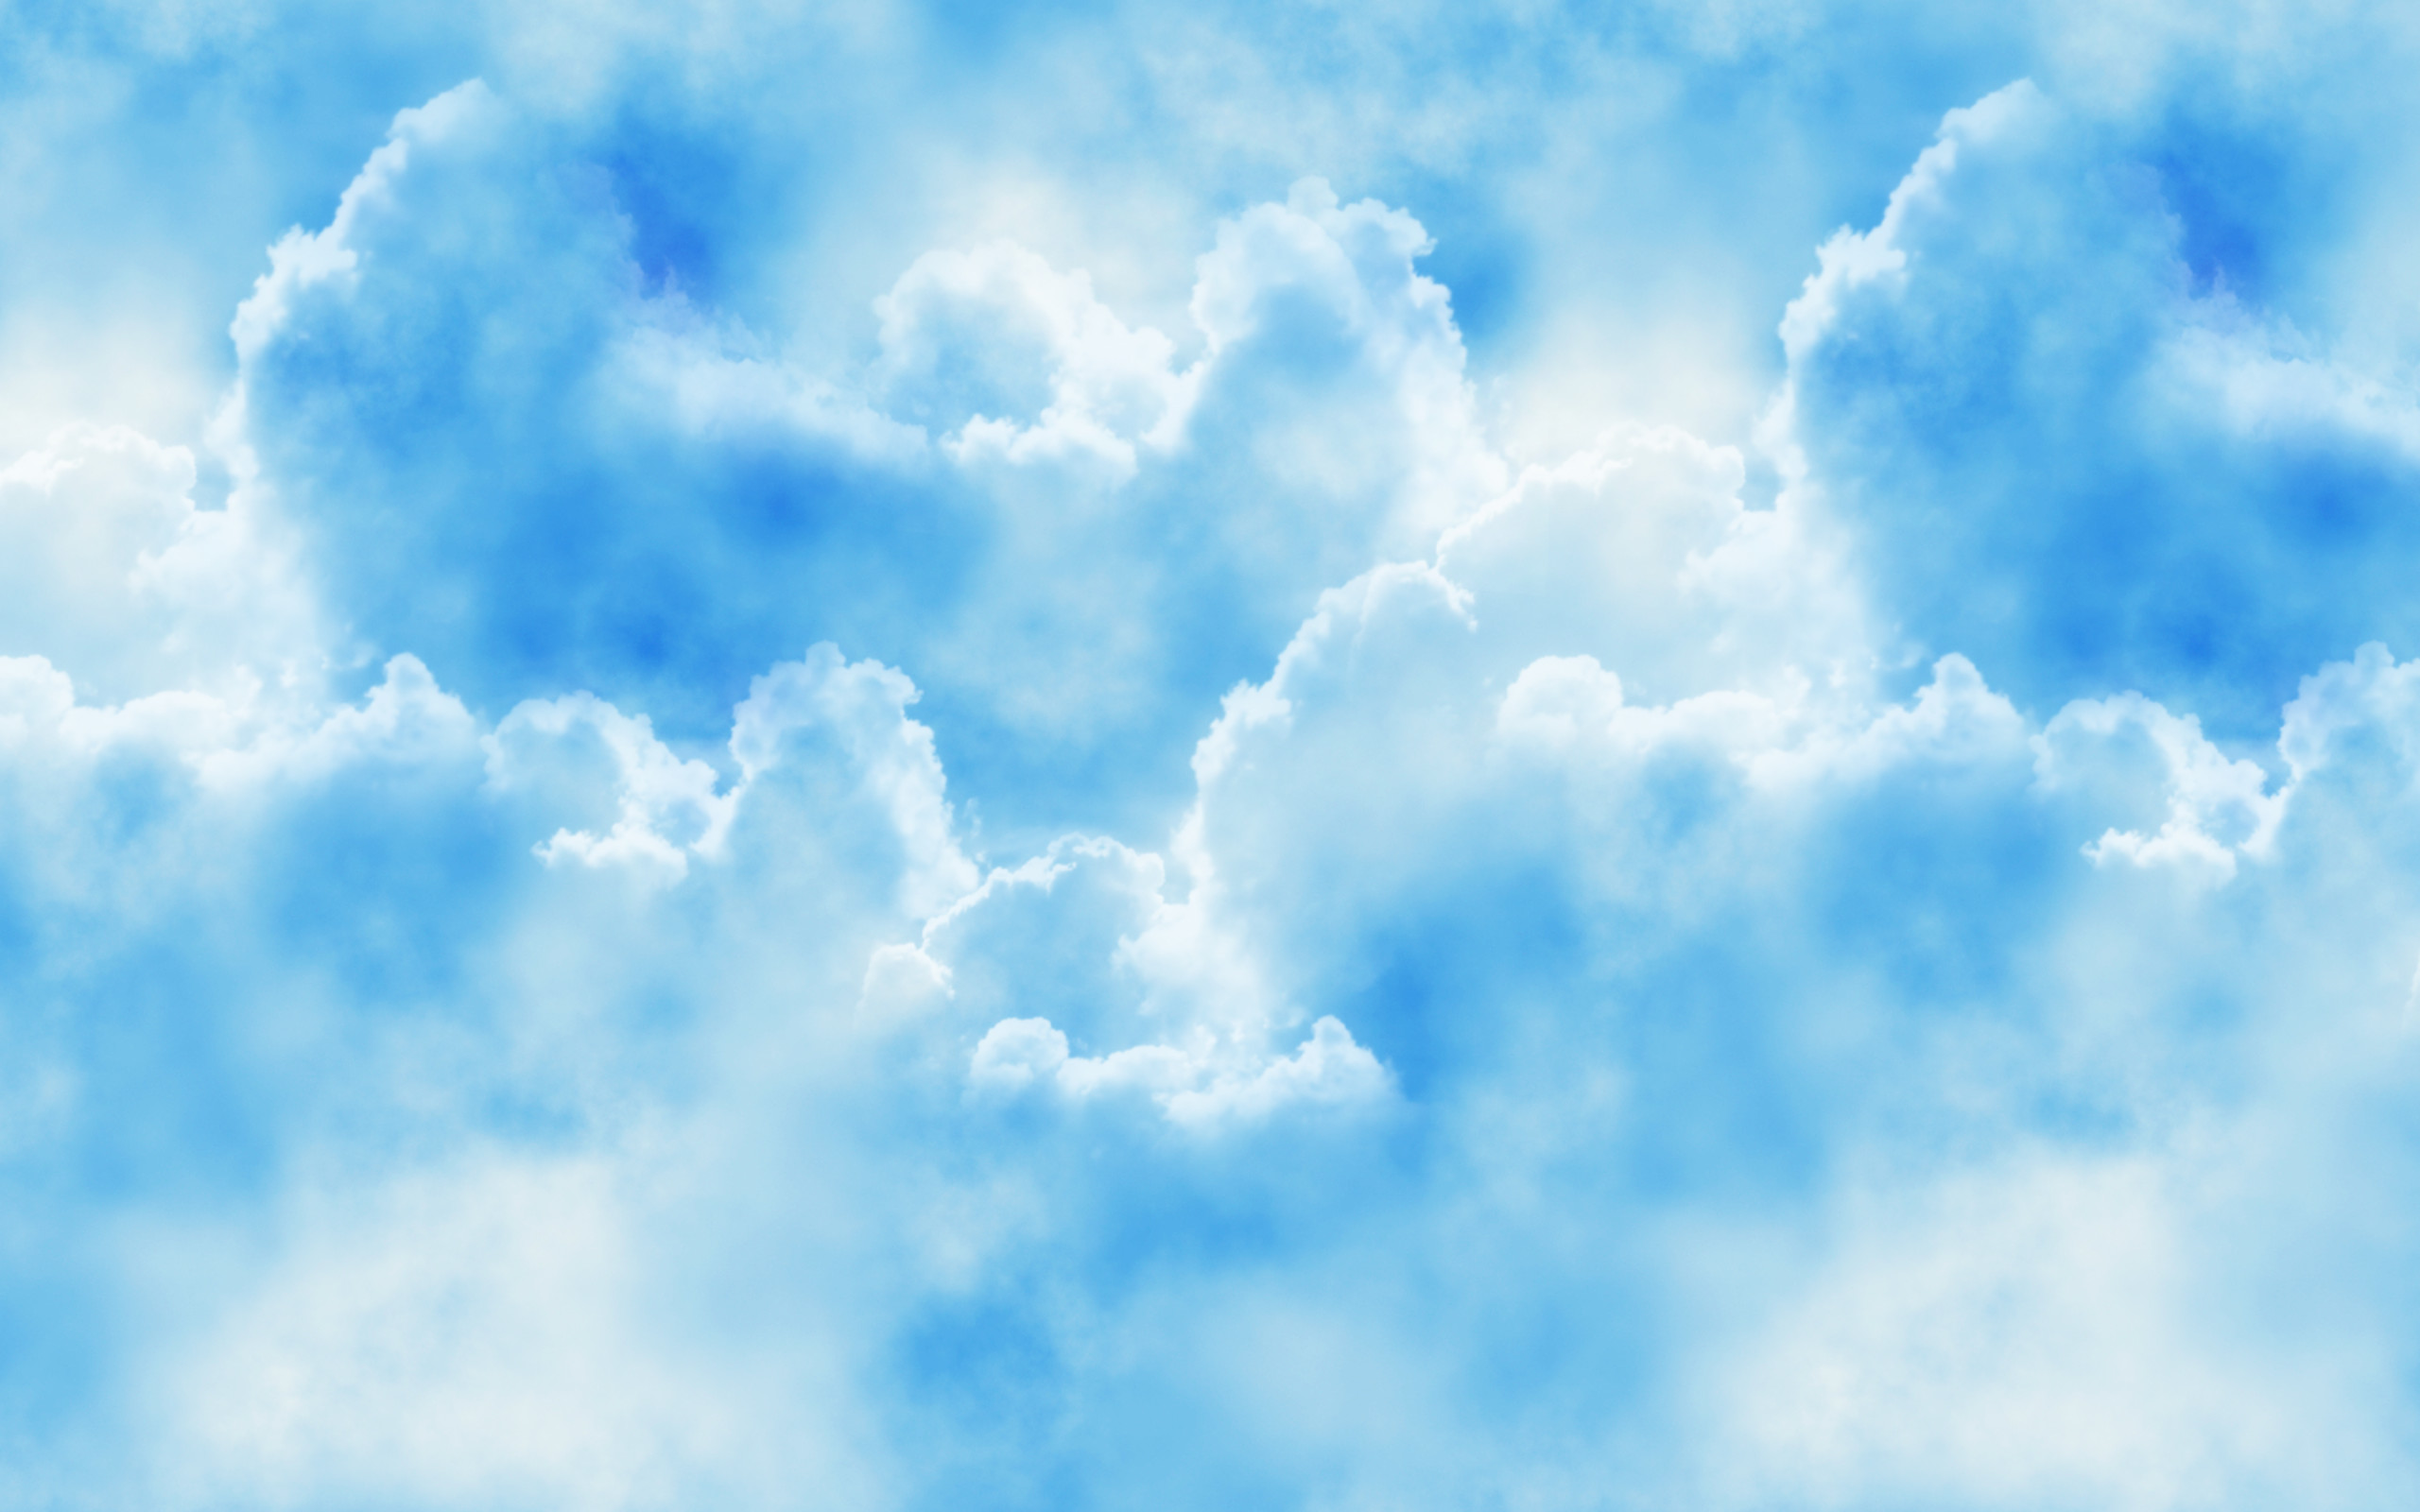 2560x1600 Cloudy Sky Wallpaper Background 4972